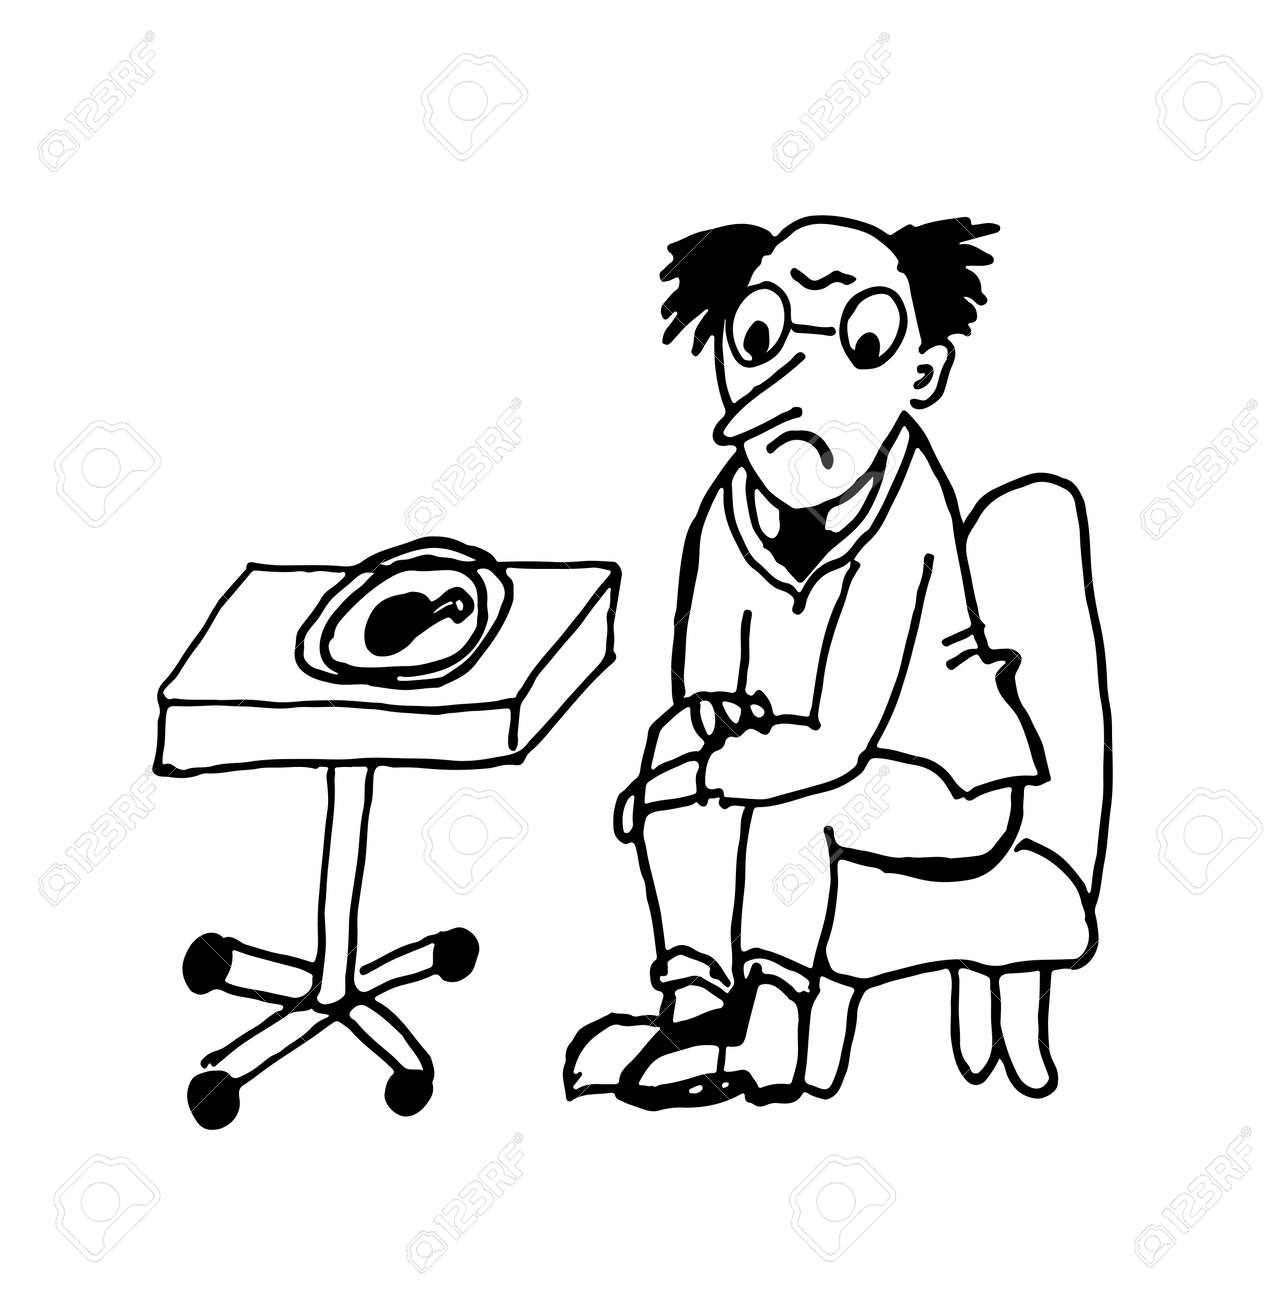 Man sitting in chair drawing - Vector A Man On A Diet Looking At A Fried Chicken Leg Sitting In A Chair Contour Caricature Sketch Comic Vector Illustration